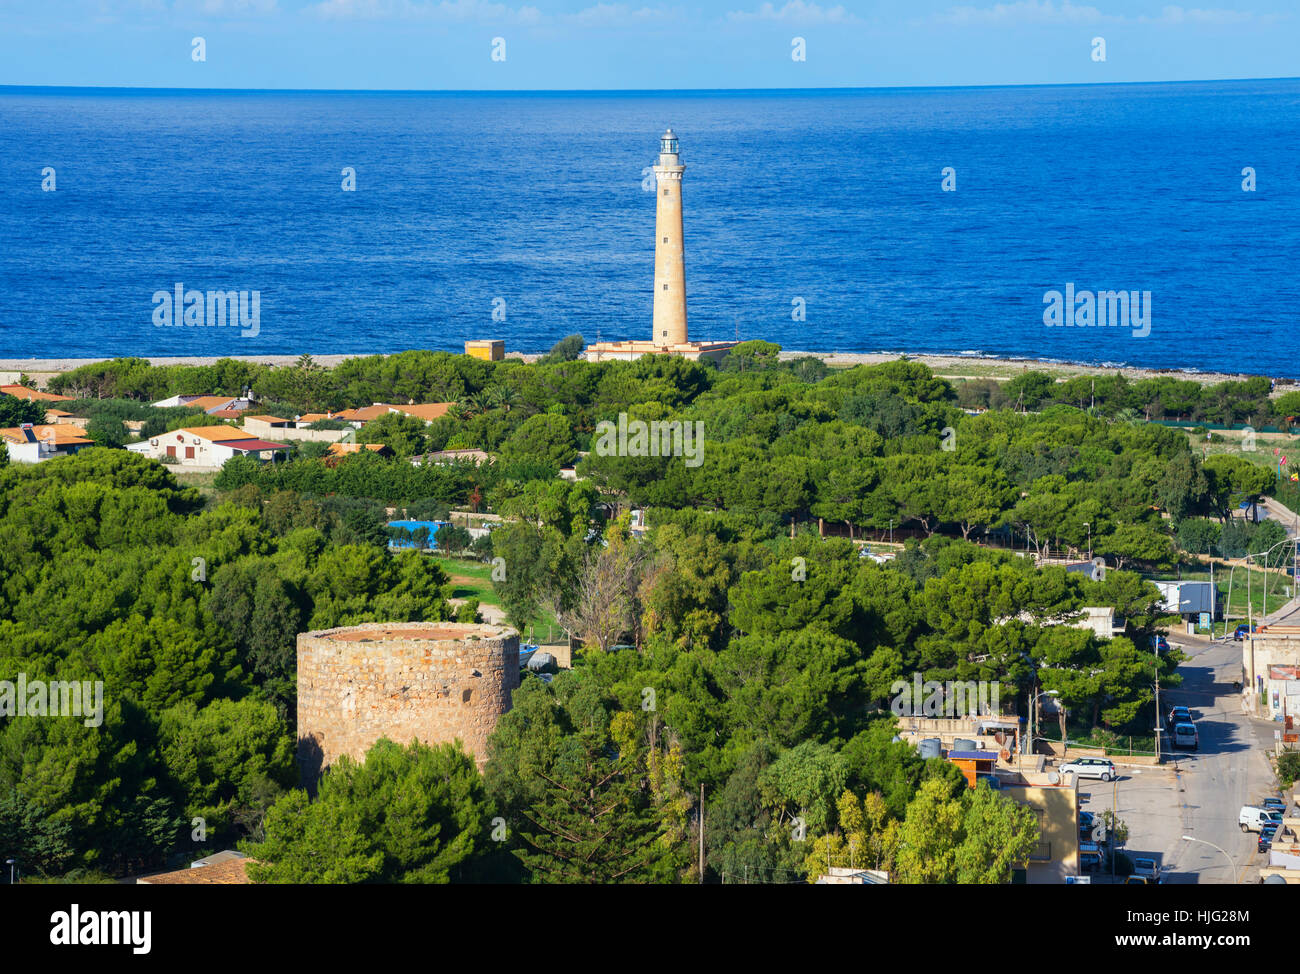 Phare, San Vito lo Capo, Sicile, Italie Photo Stock